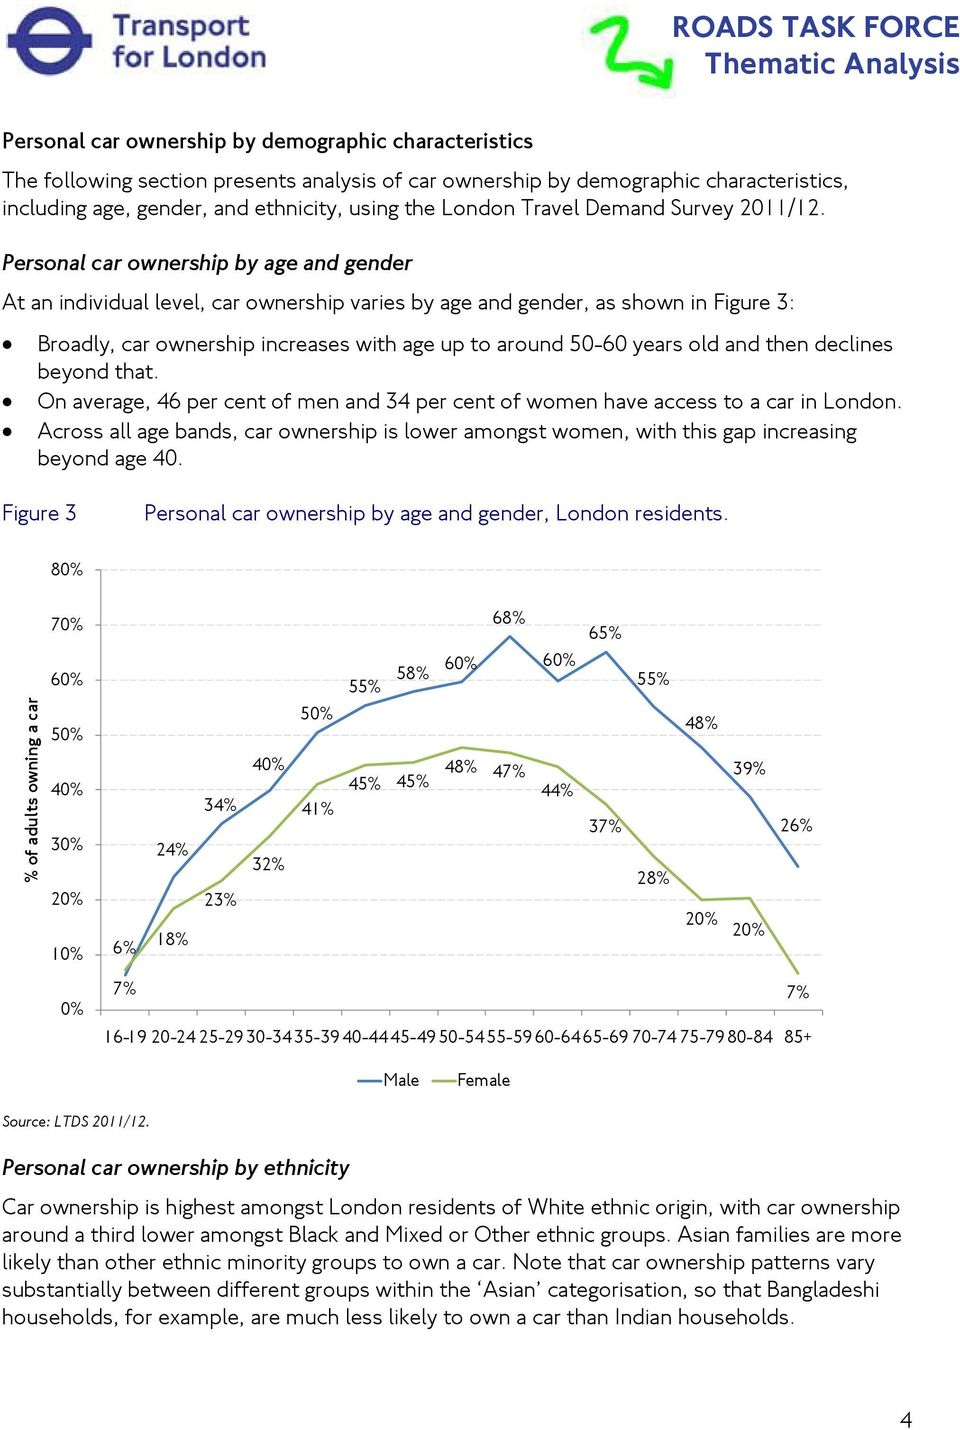 Personal car ownership by age and gender At an individual level, car ownership varies by age and gender, as shown in Figure 3: Broadly, car ownership increases with age up to around 50-60 years old